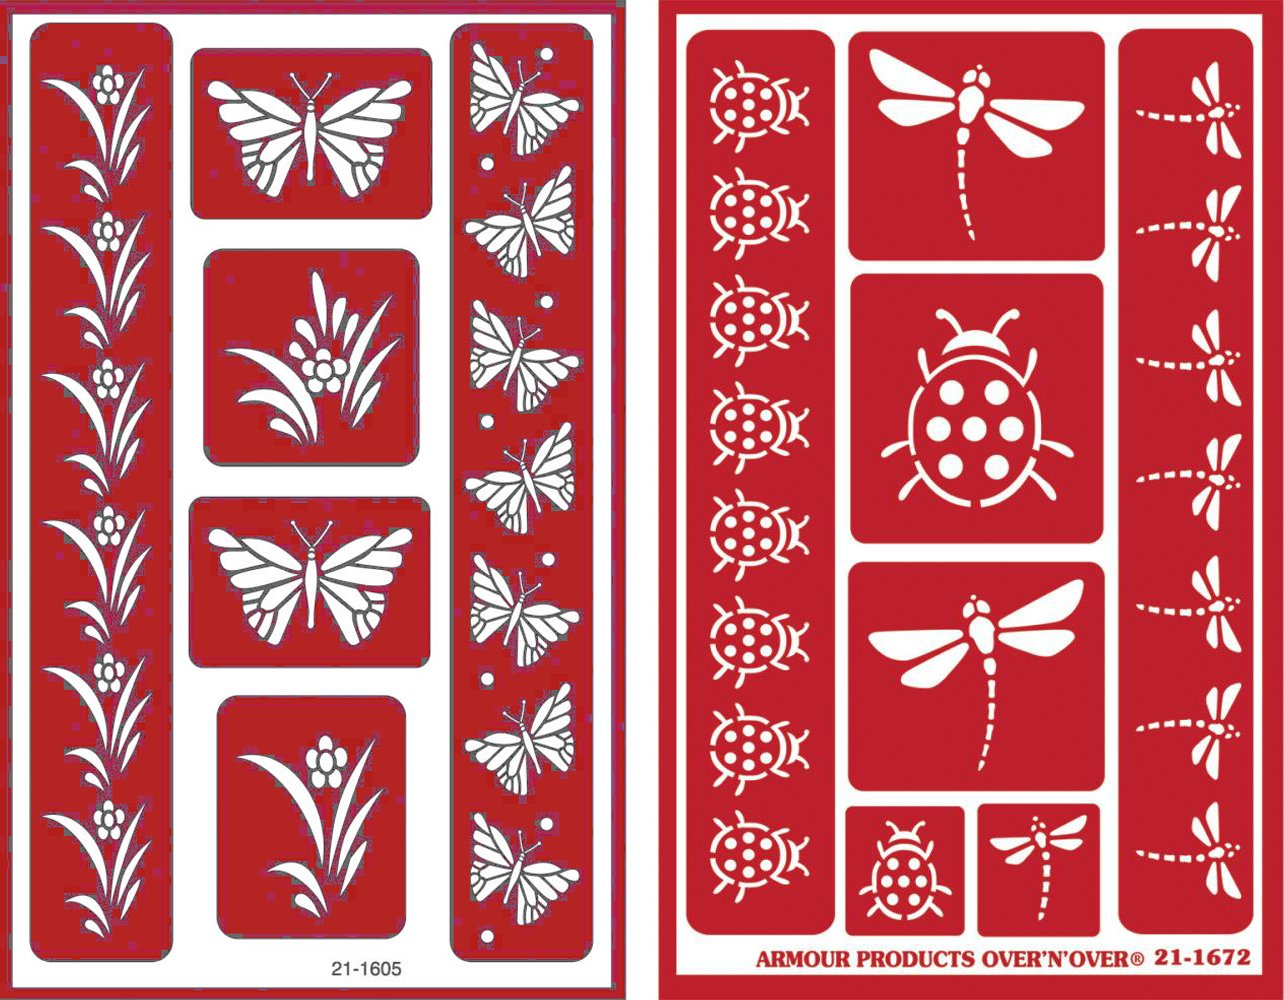 Over 'n' Over Reusable Self-Stick Etching Stencil for Glass (or Stamping) - Bundle of Two Sets - Butterflies & Garden Friends Armour Products 4336975330